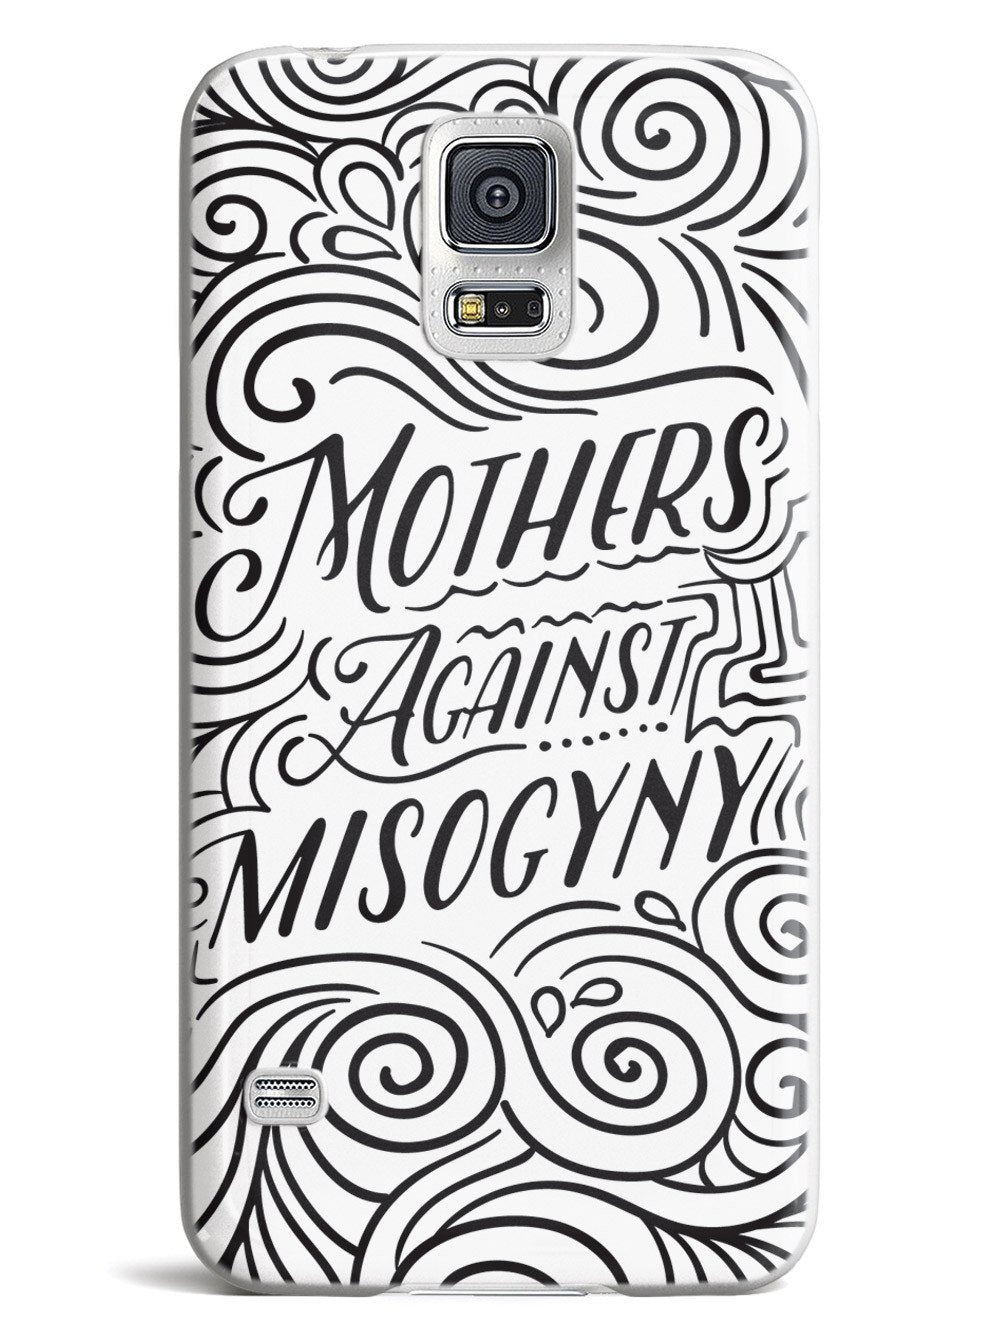 Mothers Against Misogyny - White Case - pipercleo.com